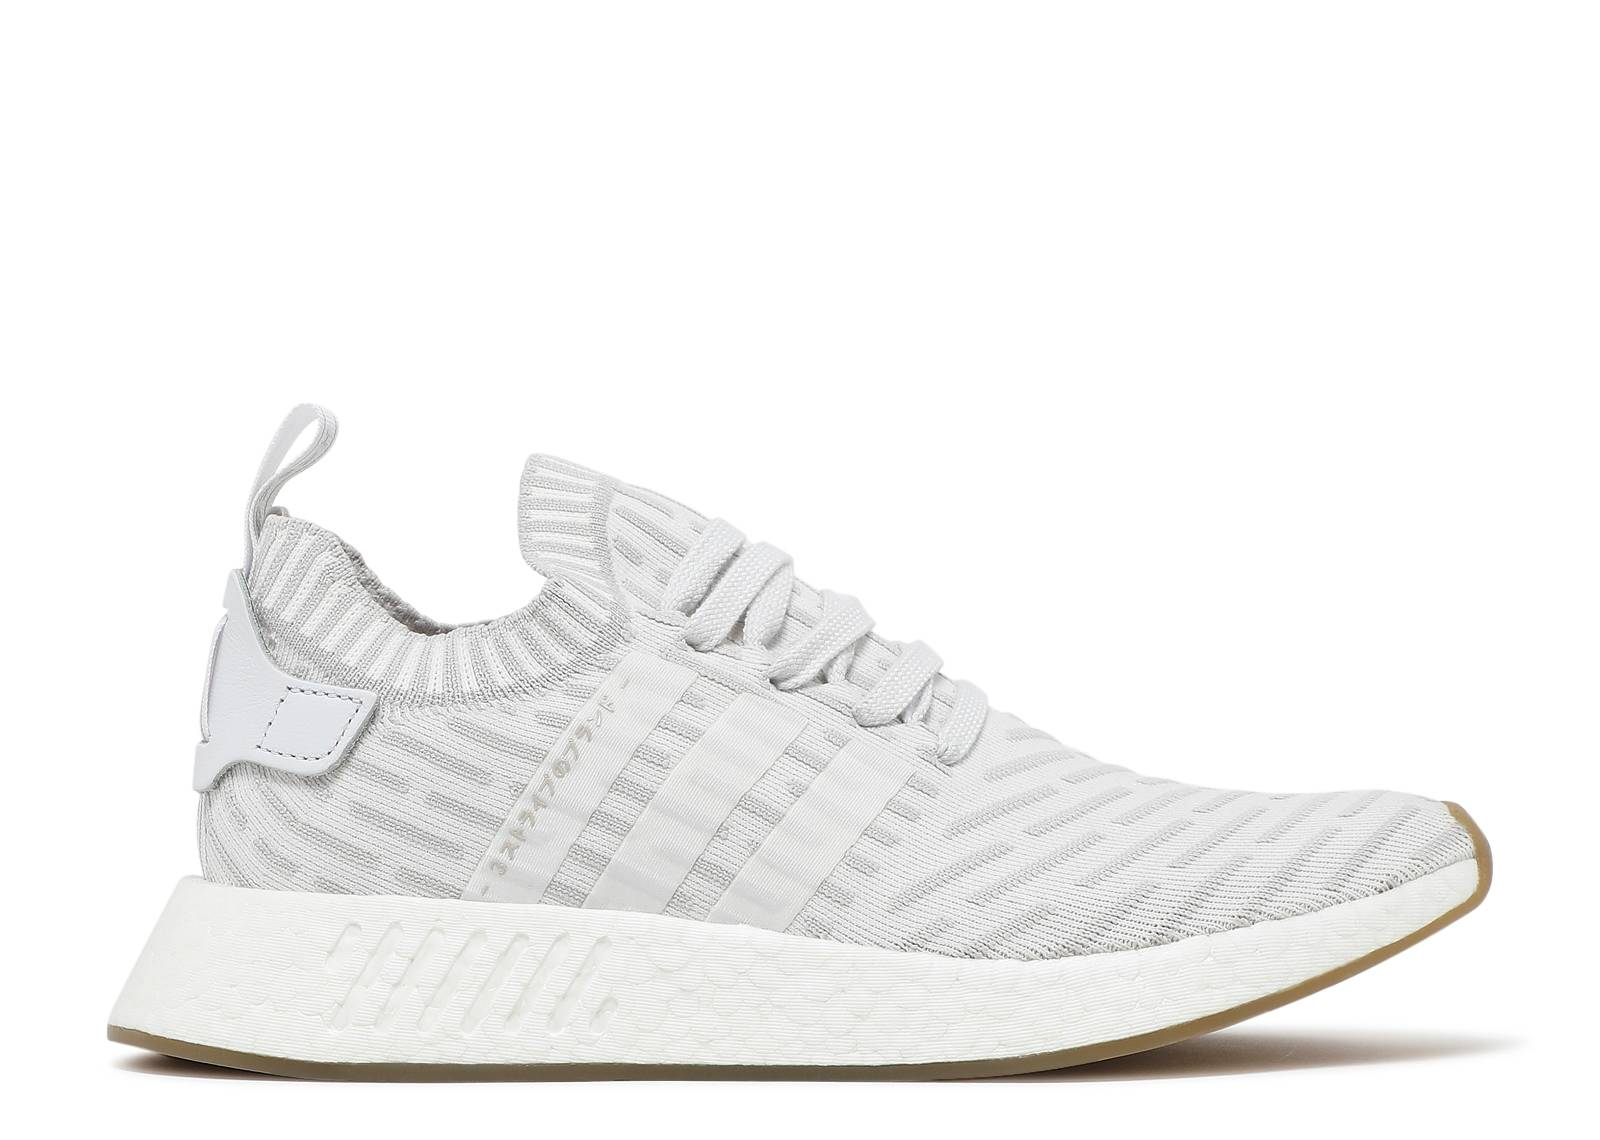 low priced 39923 2473f Adidas NMD - adidas Originals Men's & Women's Shoes | Flight ...